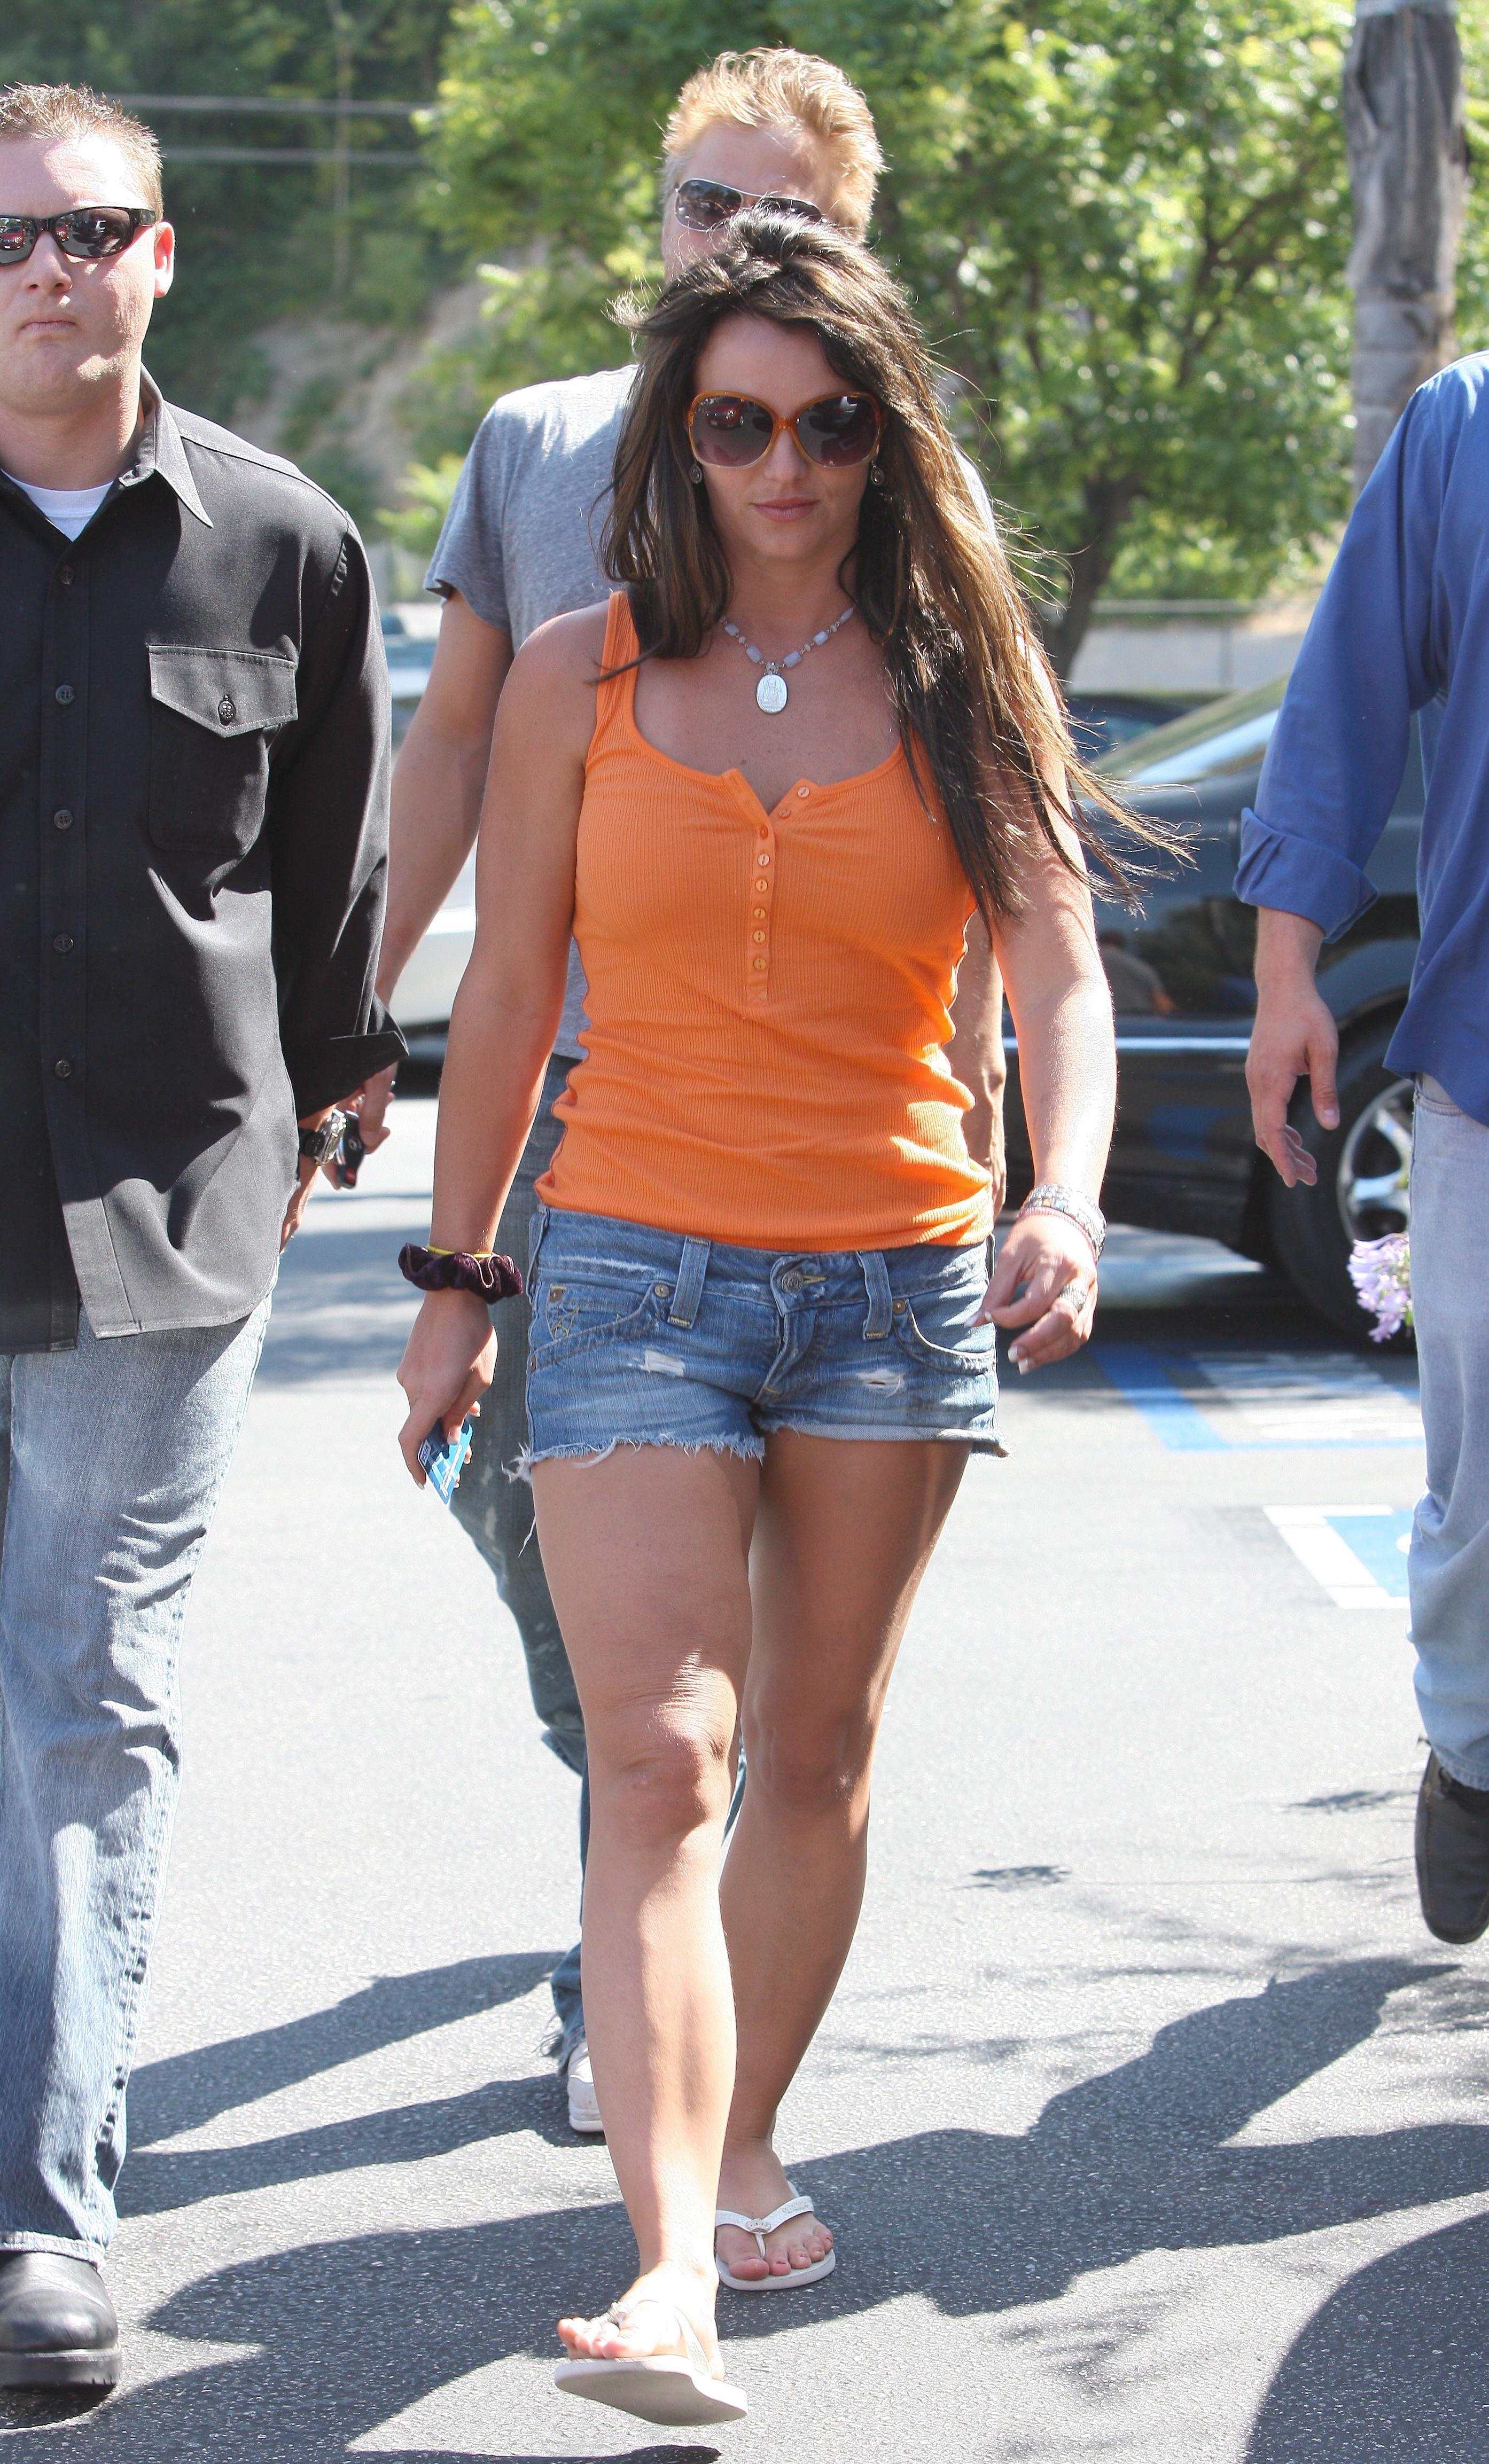 52890_celeb-city.org-The_Elder-Britney_Spears_2009-06-28_-_went_to_the_Bed_Bath_and_Beyond_671_122_61lo.jpg